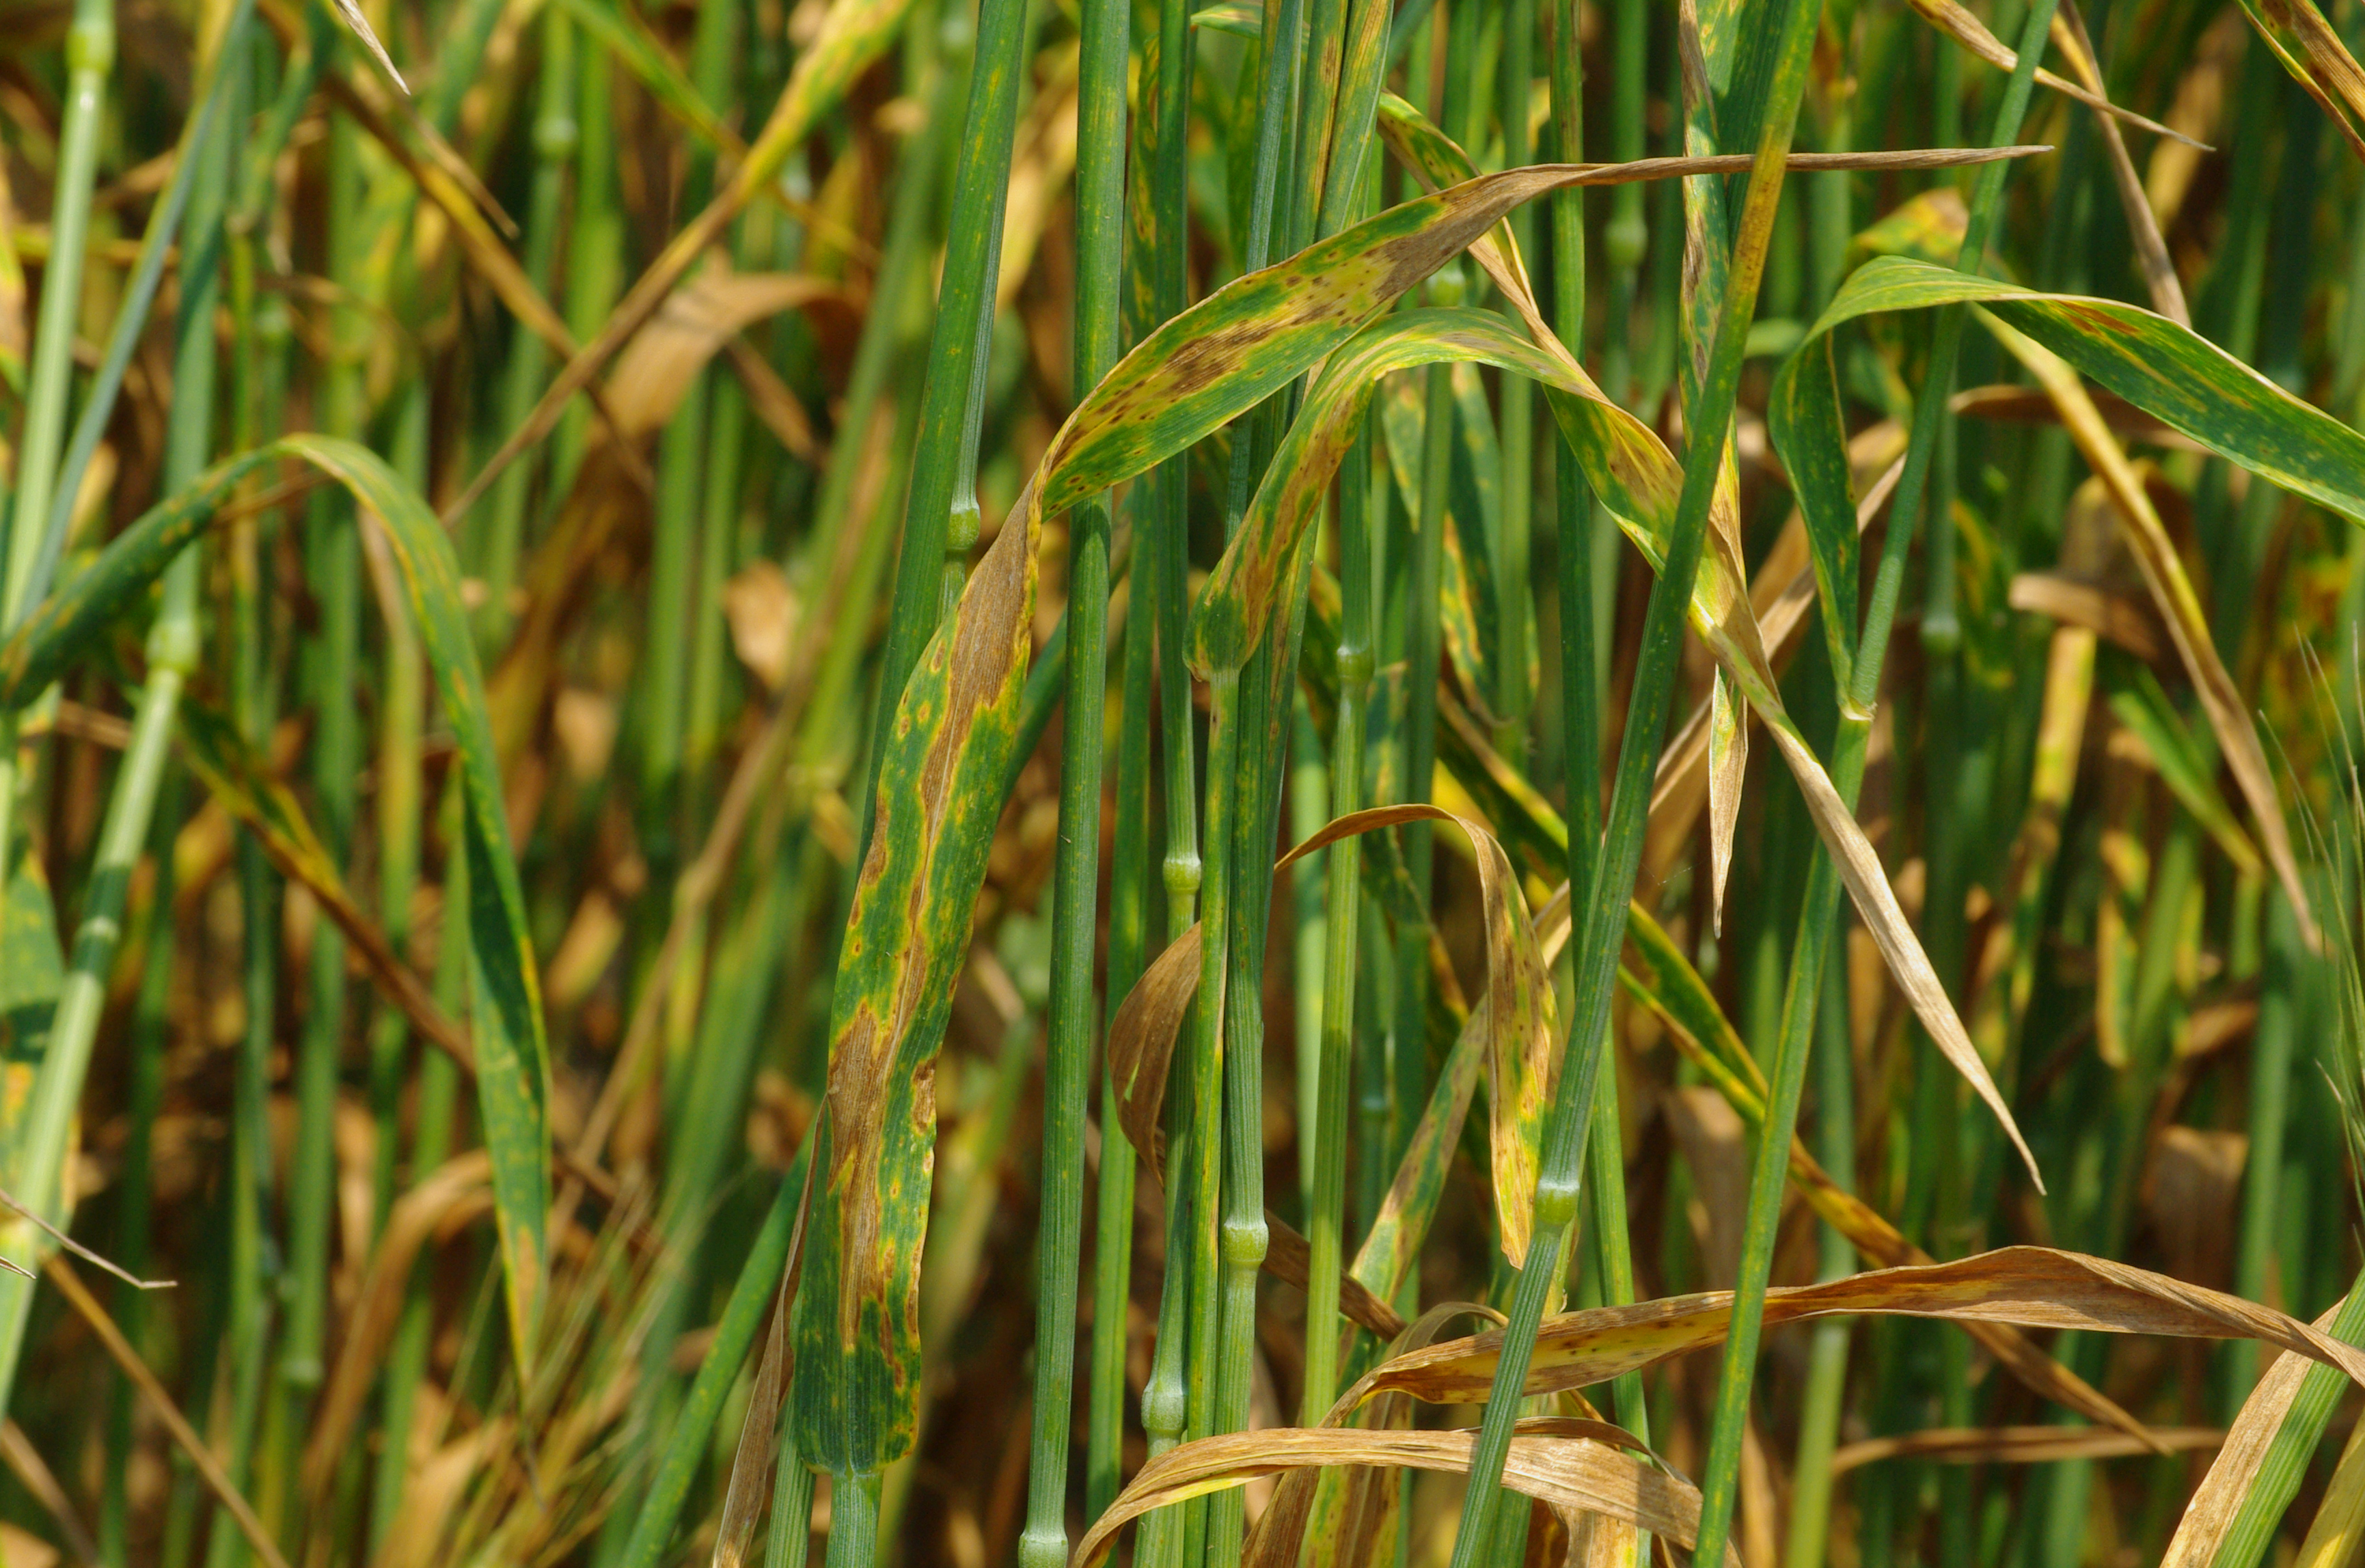 Septoria tritici blotch is common, often occurring alongside other foliar diseases.